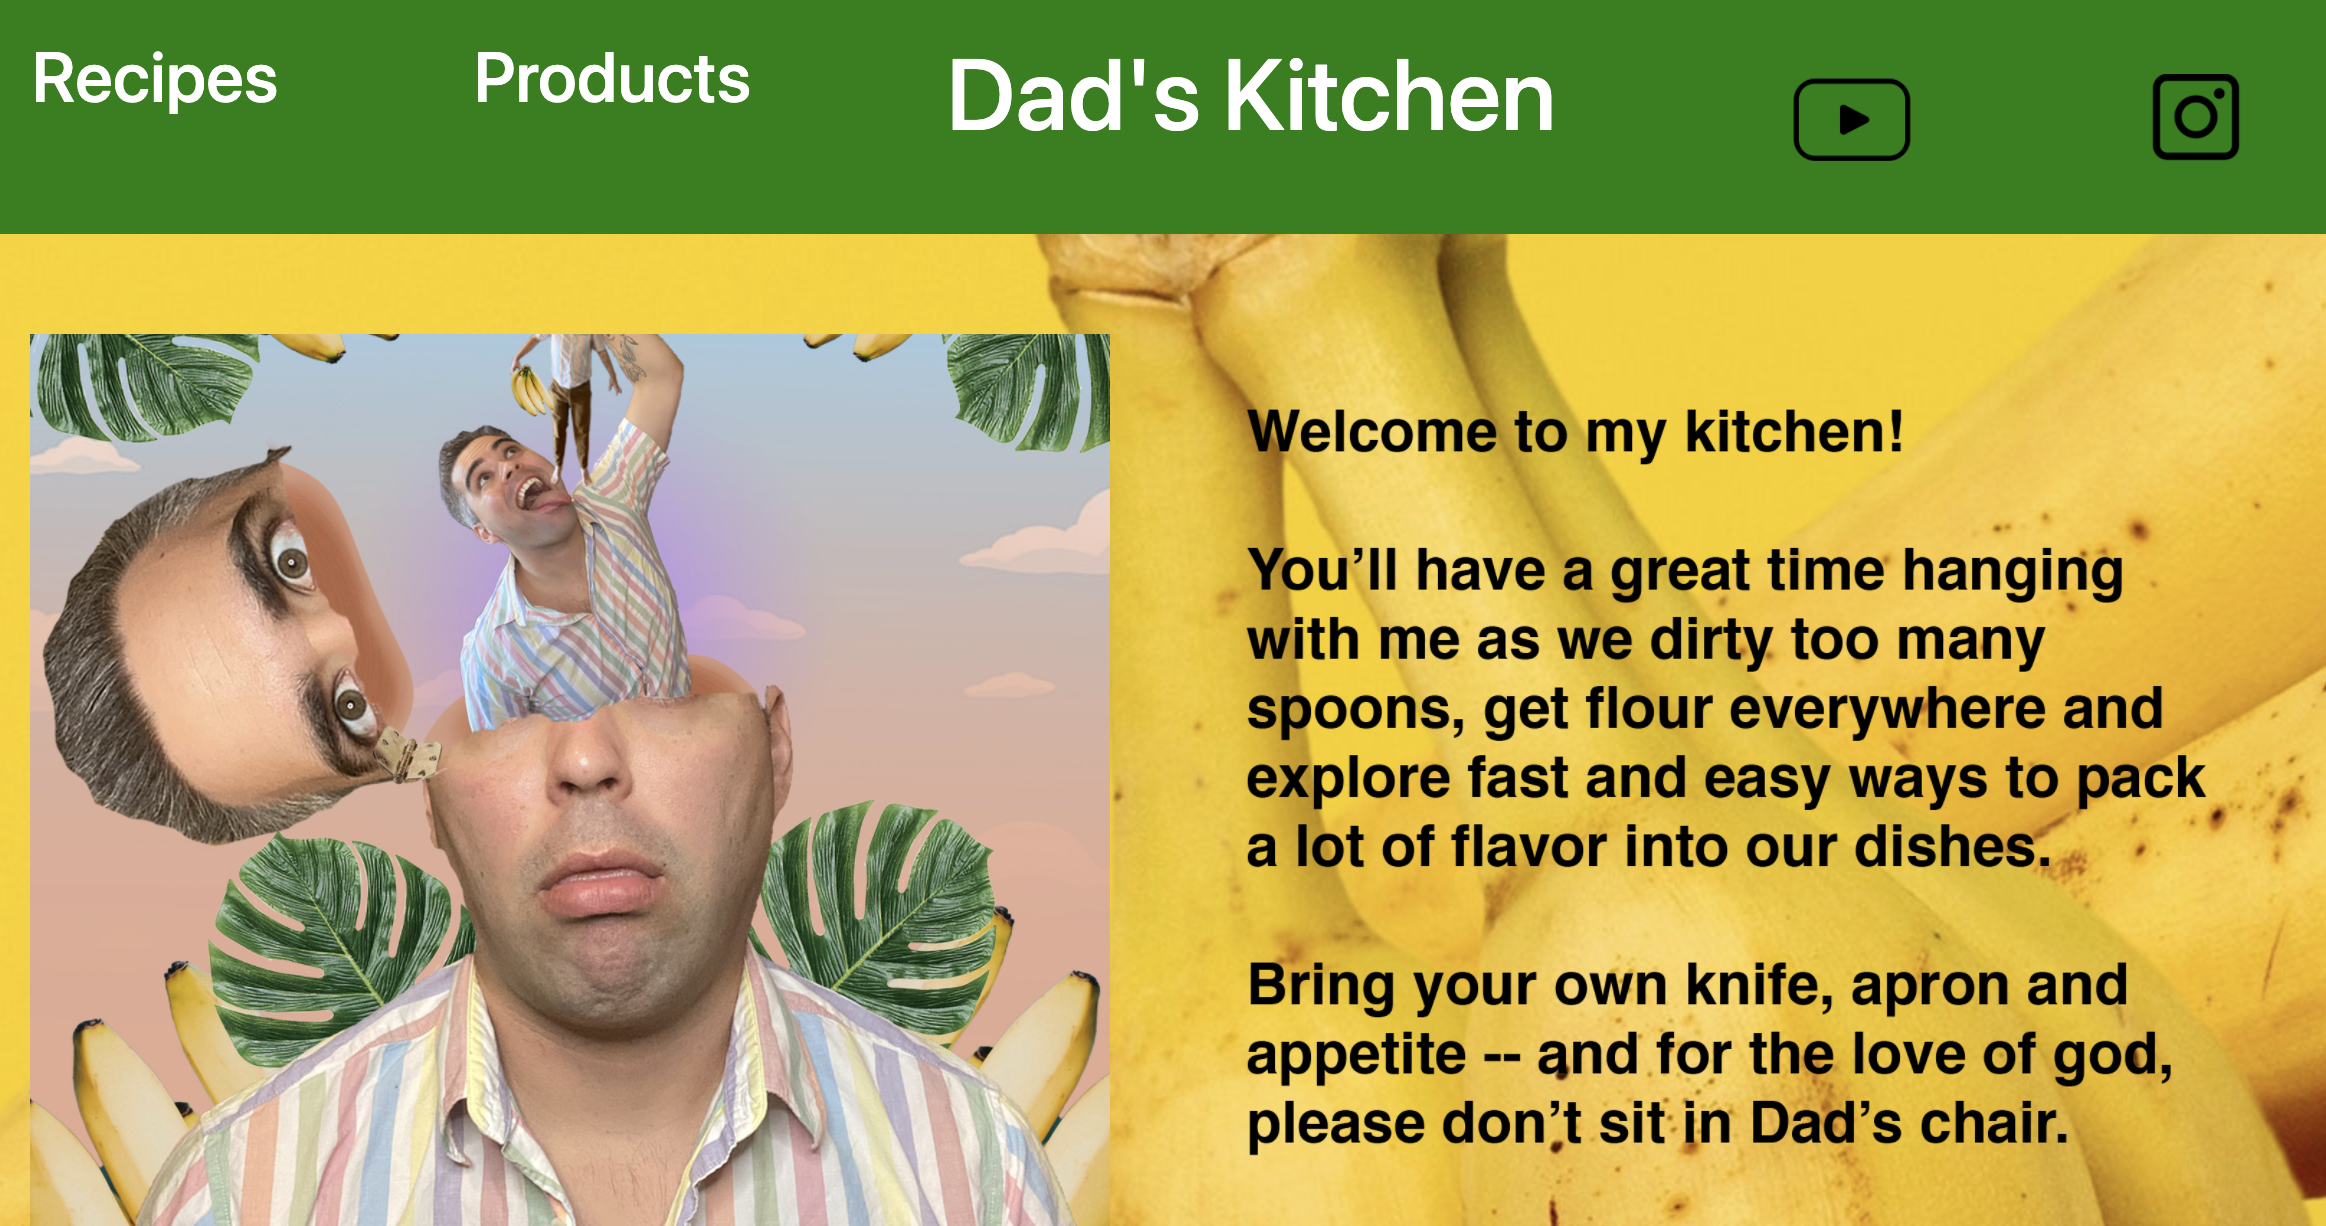 Silly and tacky mock-up of a cooking blog